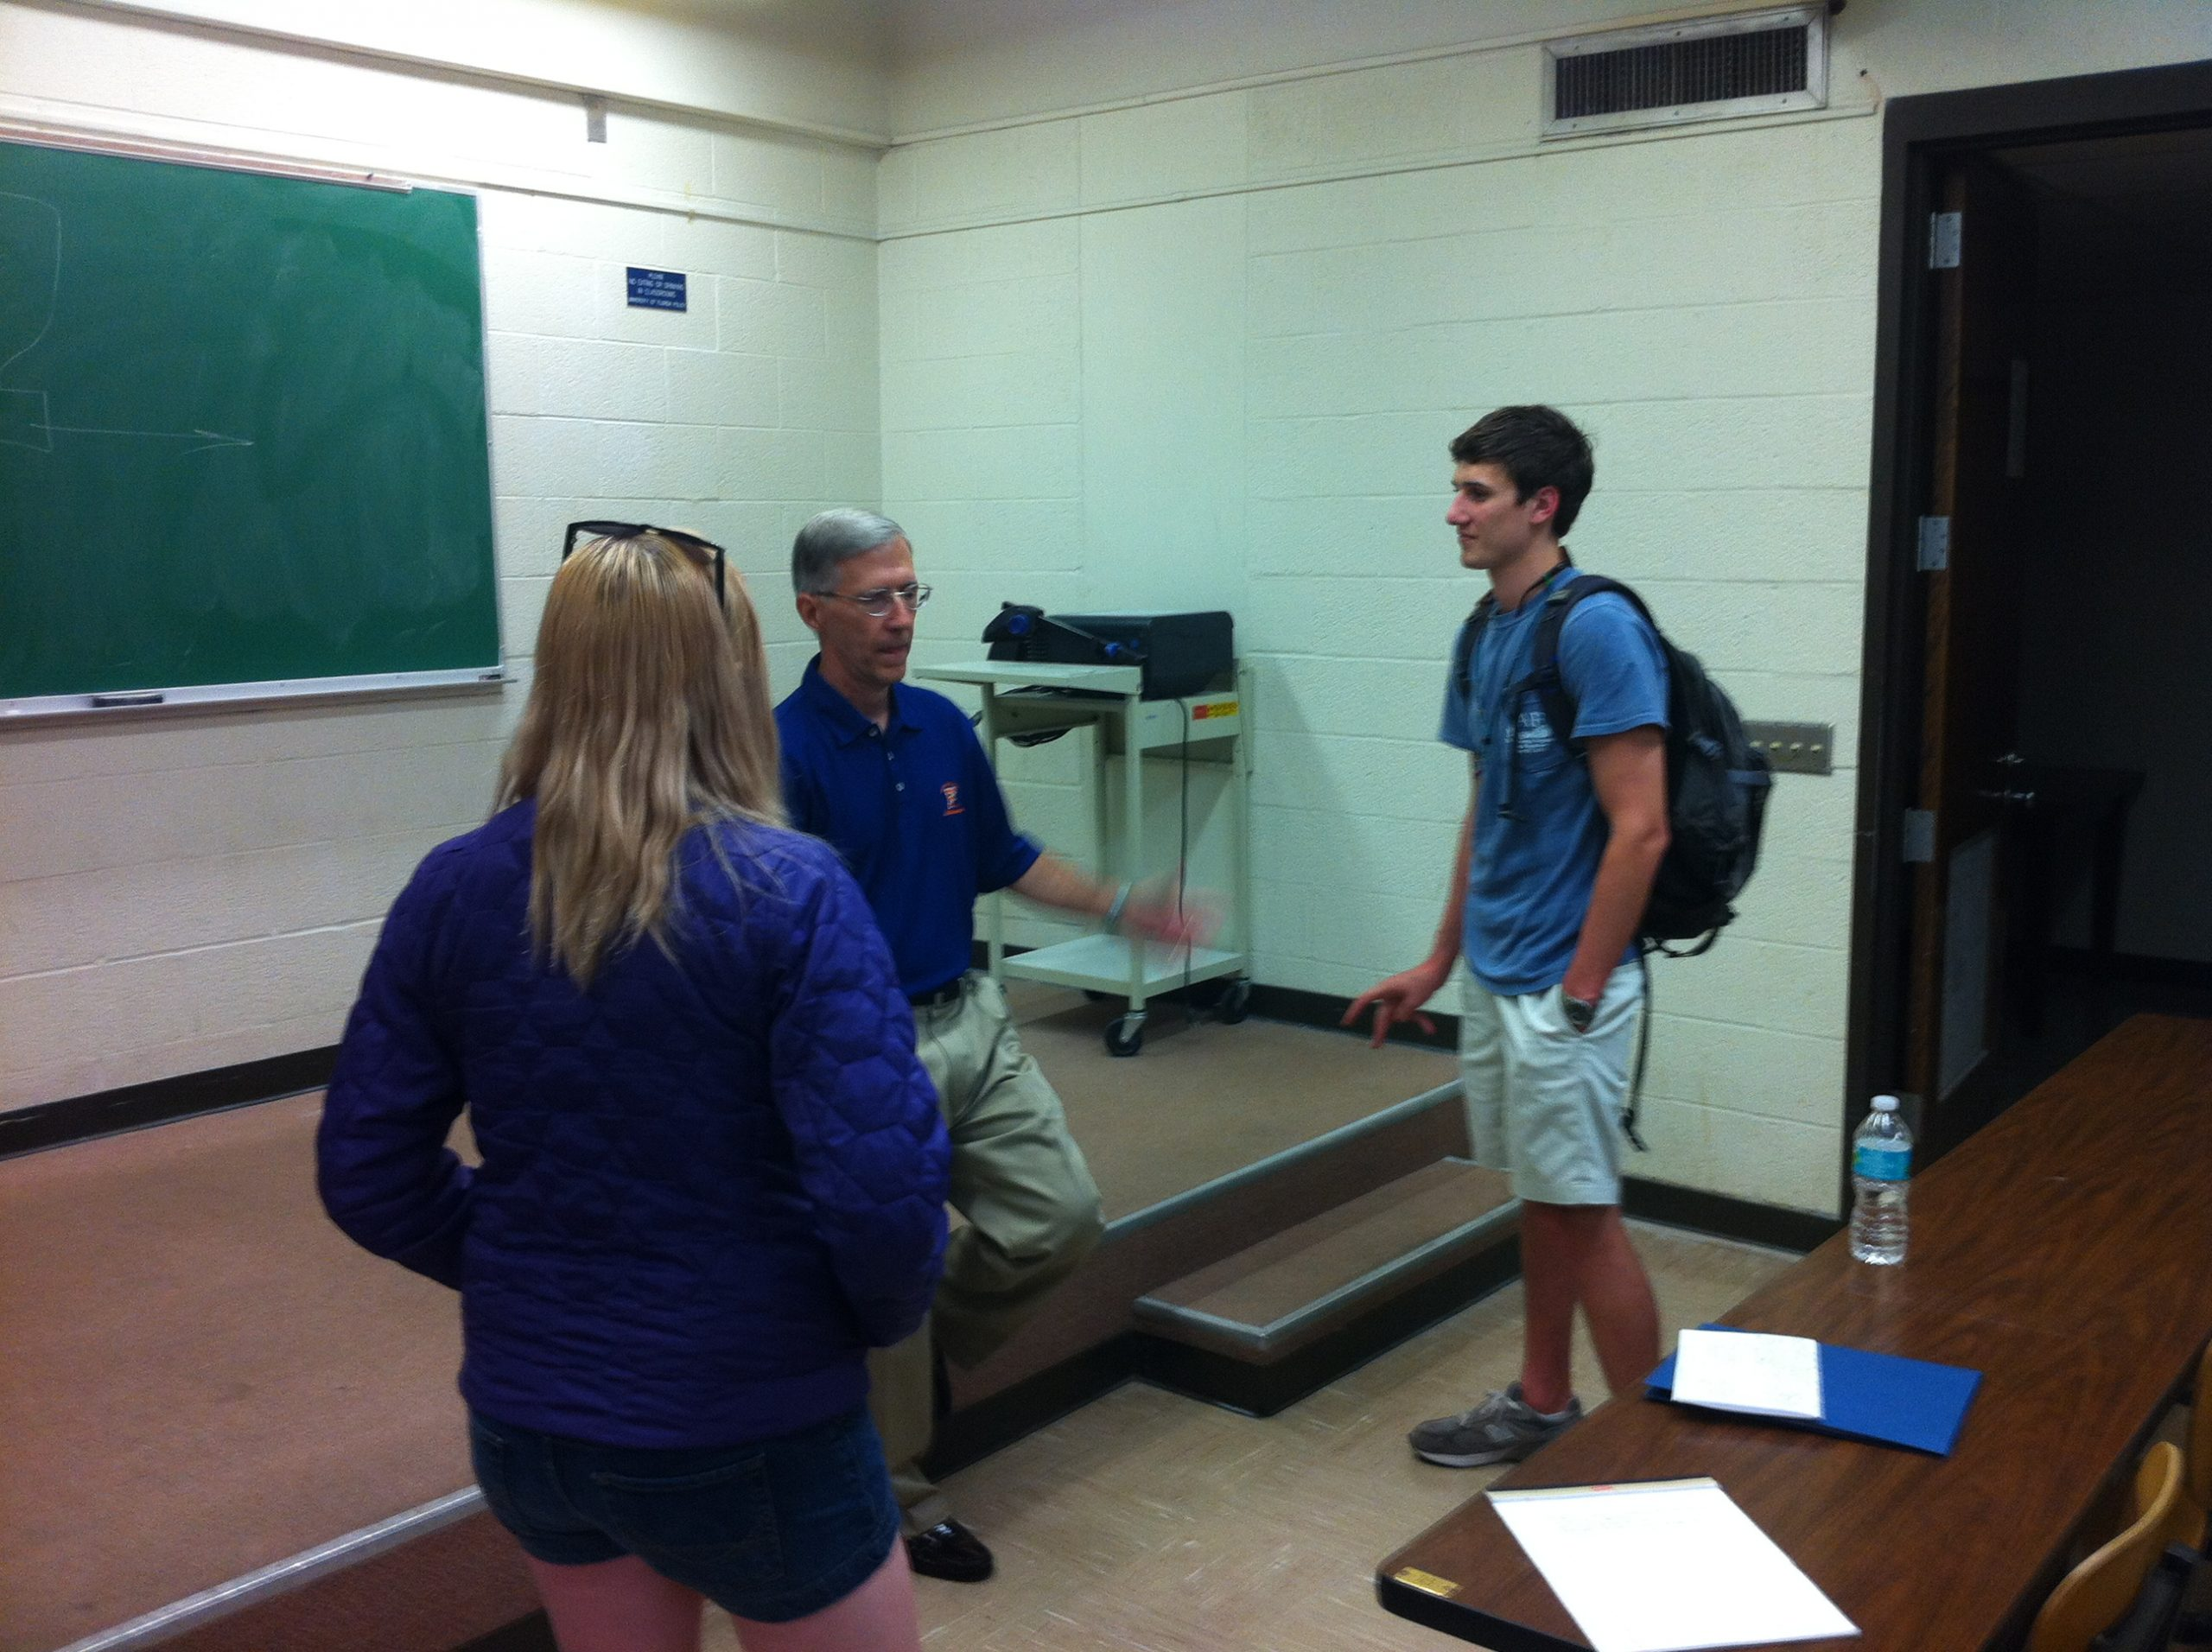 """William """"Bill"""" G. Read, III speaks with students in a classroom"""